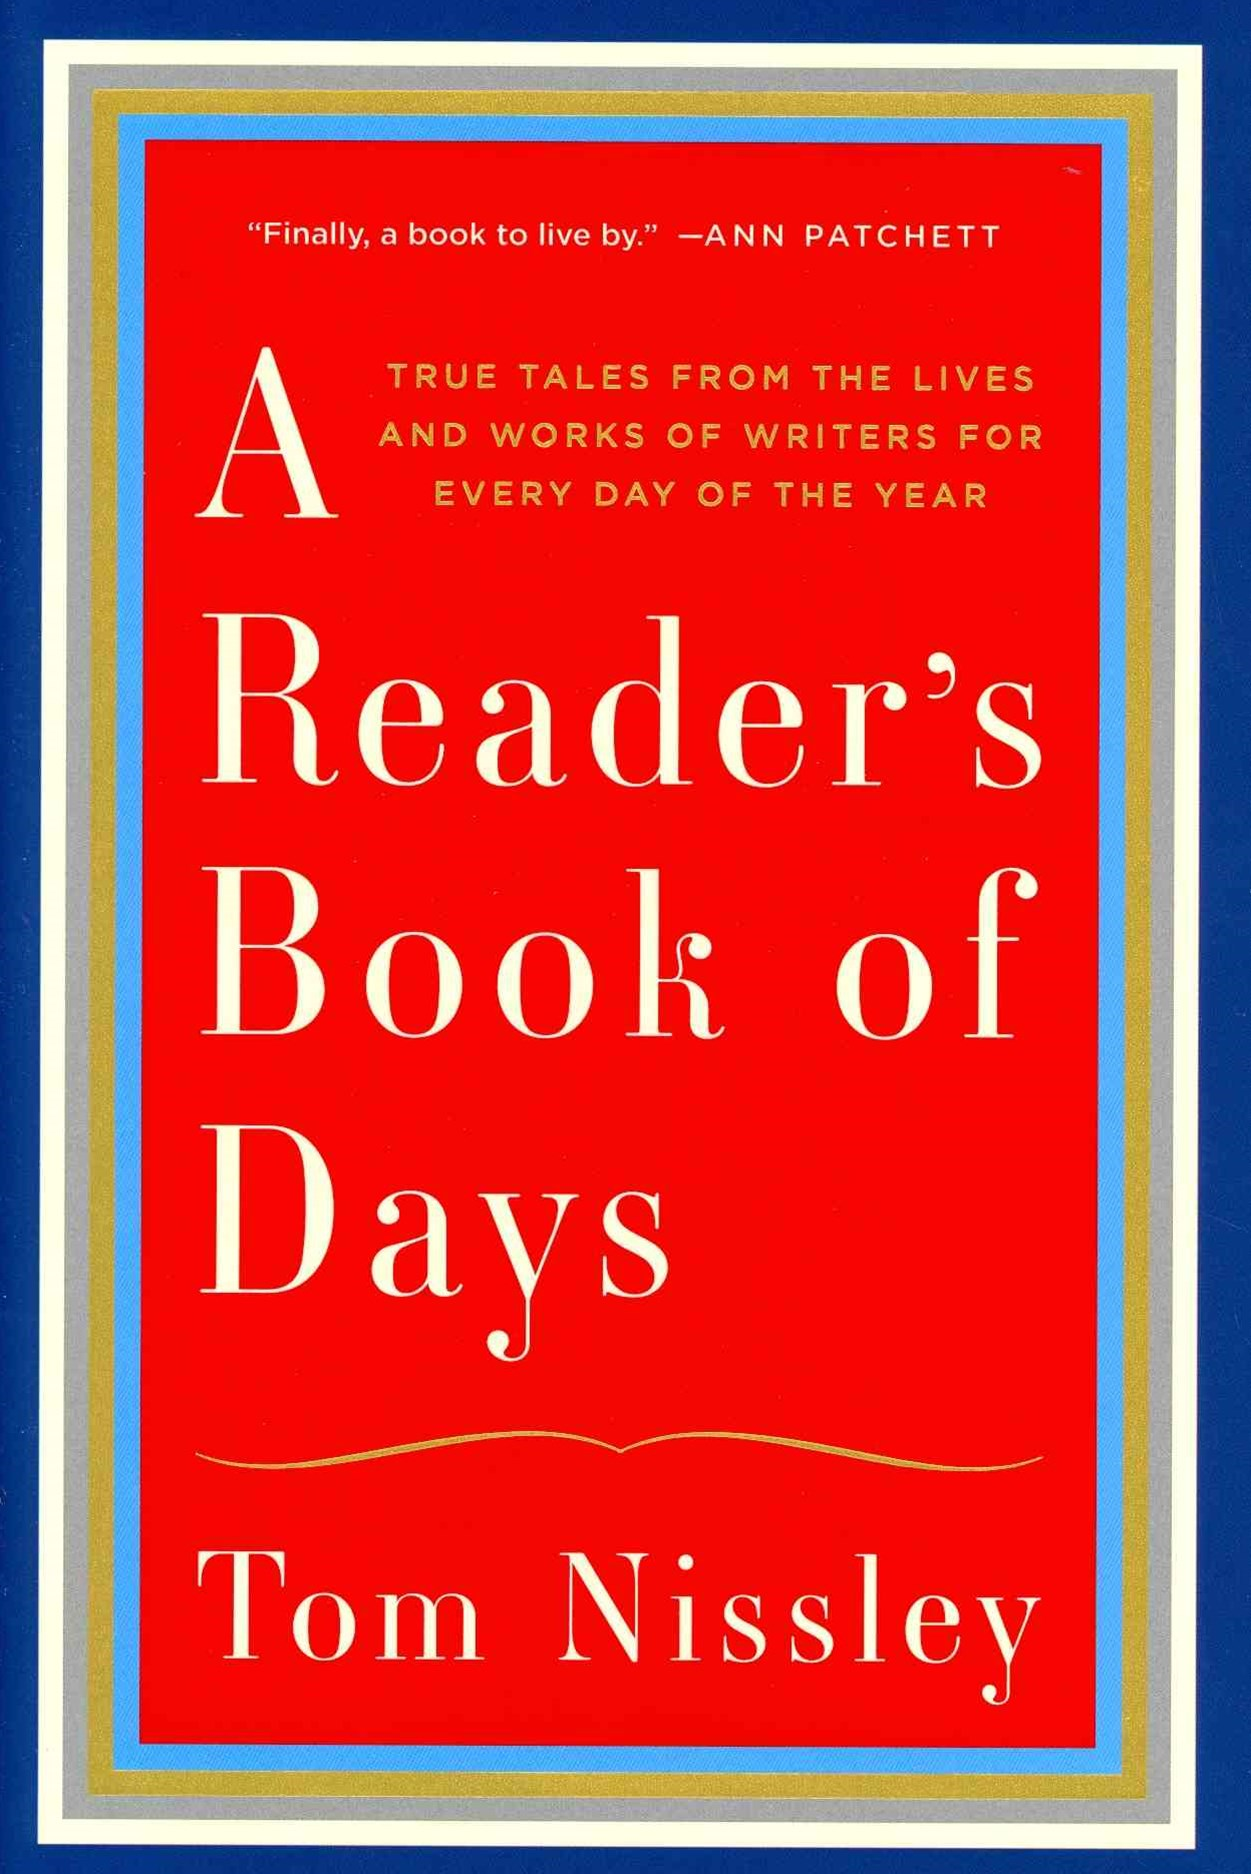 A Reader's Book of Days True Tales From the Lives and Works of Writers for Every Day of the Year